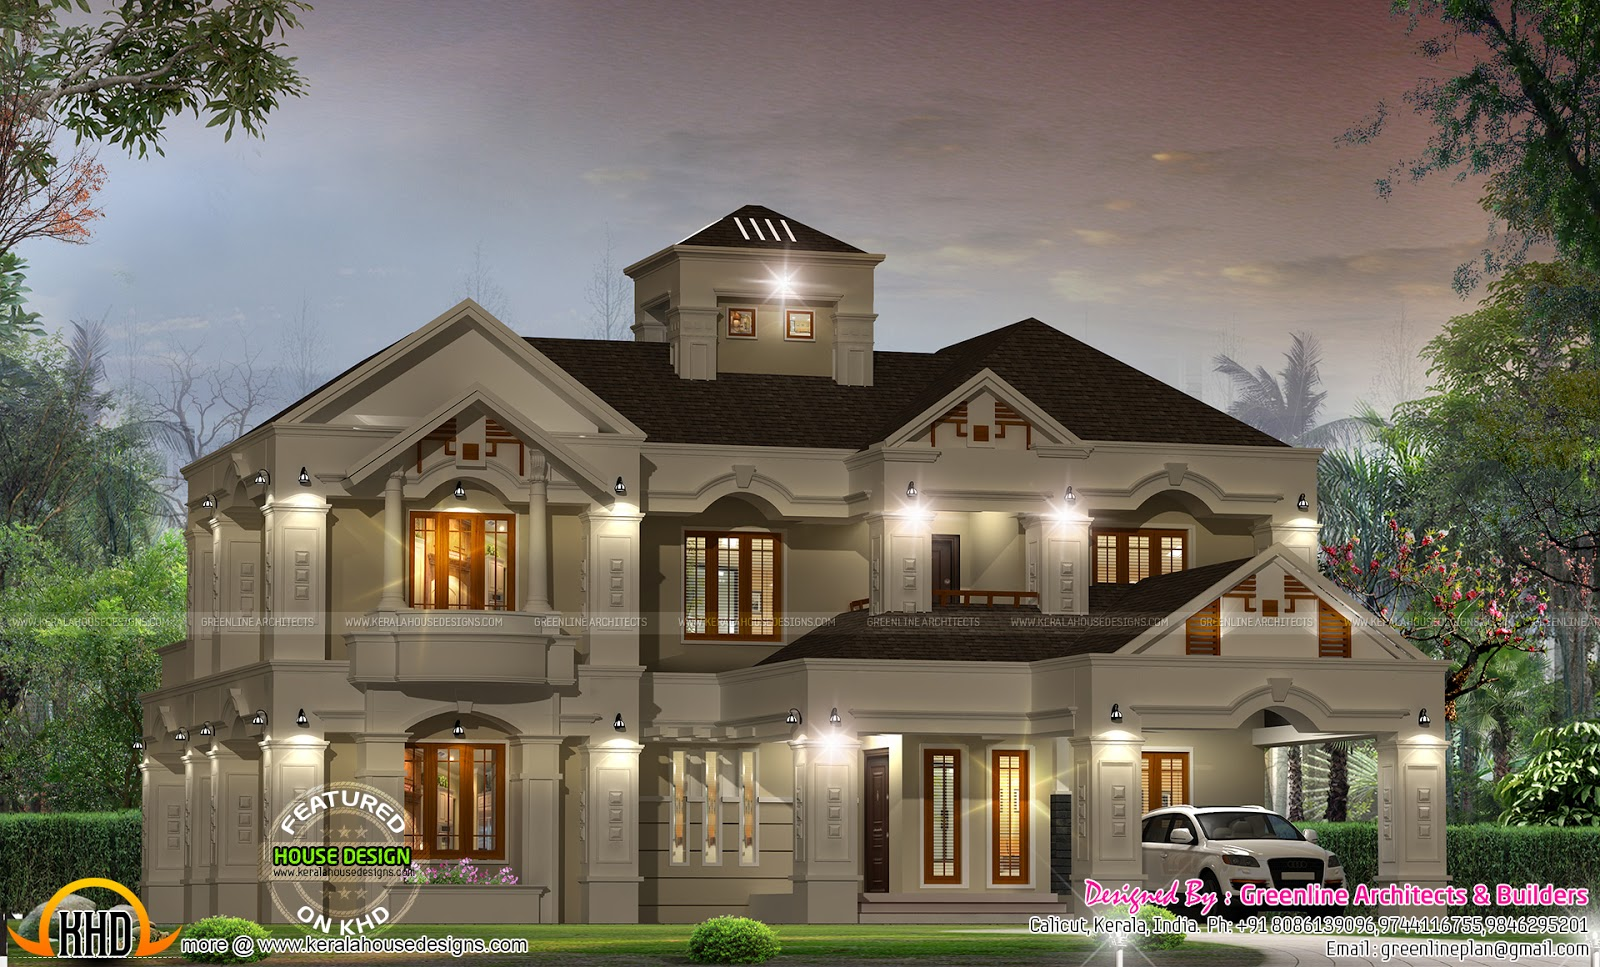 Luxury villa design in kerala kerala home design and for Villa design